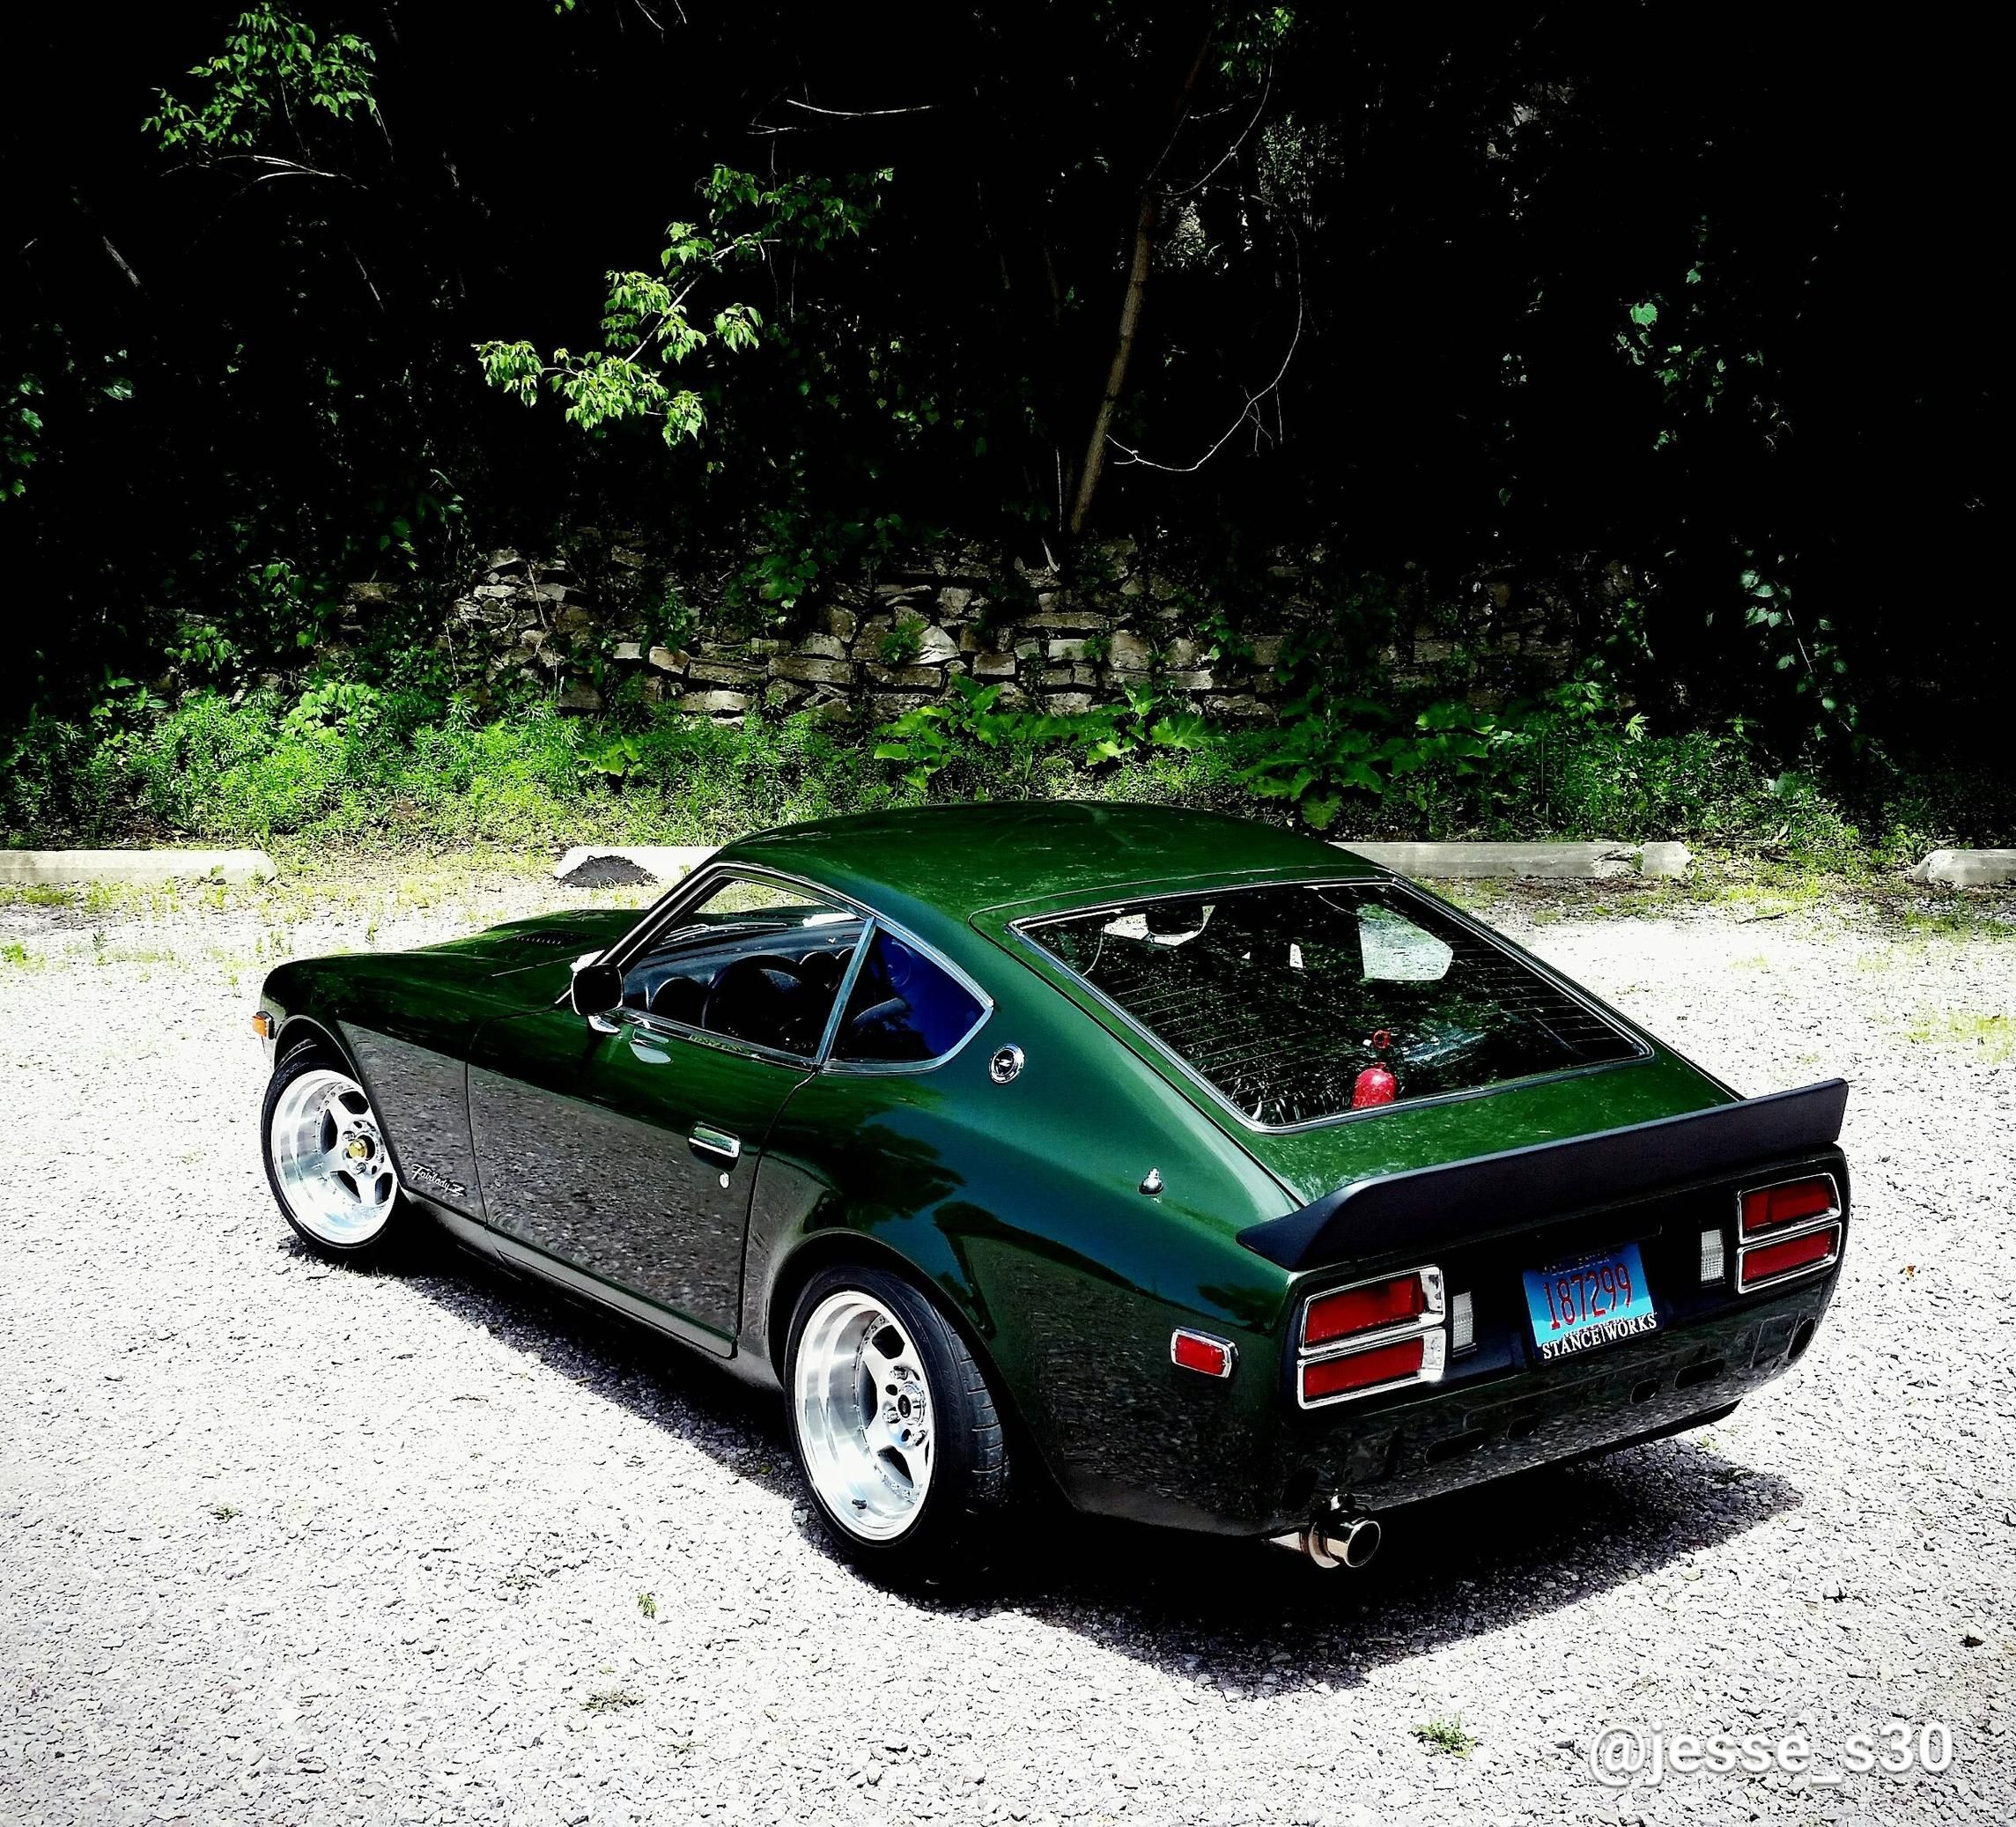 My Driveway built 280z in factory green Japanese sports